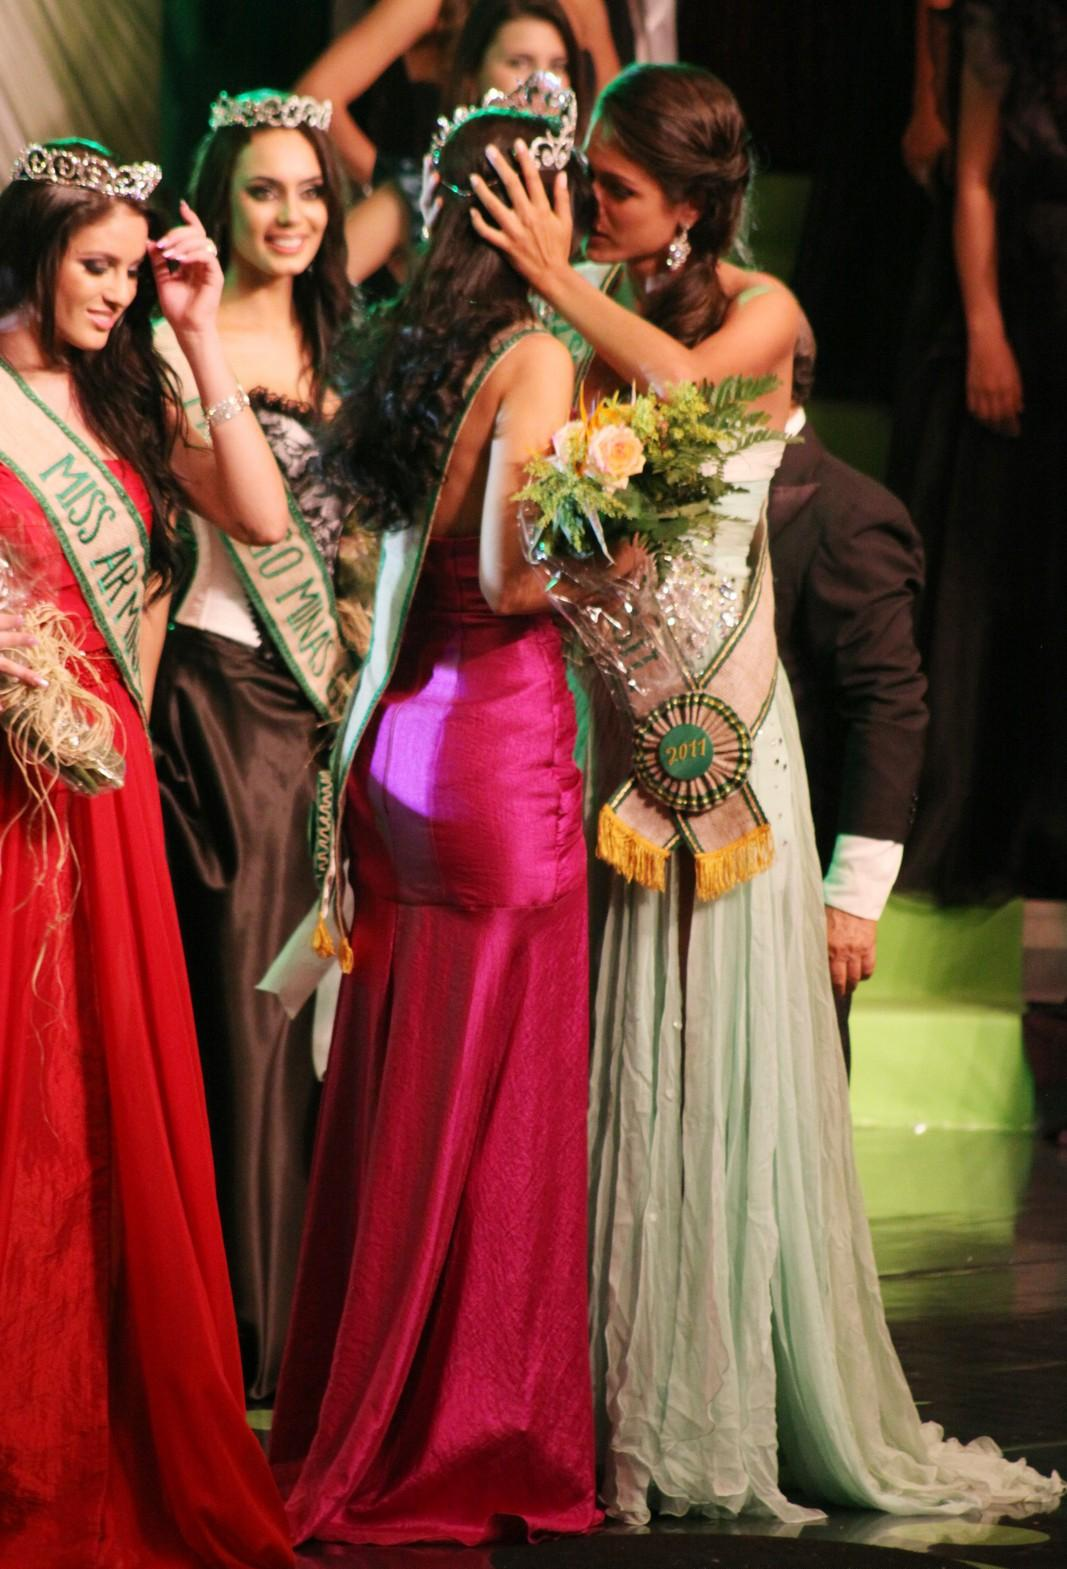 Brant Camila Goncalves won miss earth brazil 2012